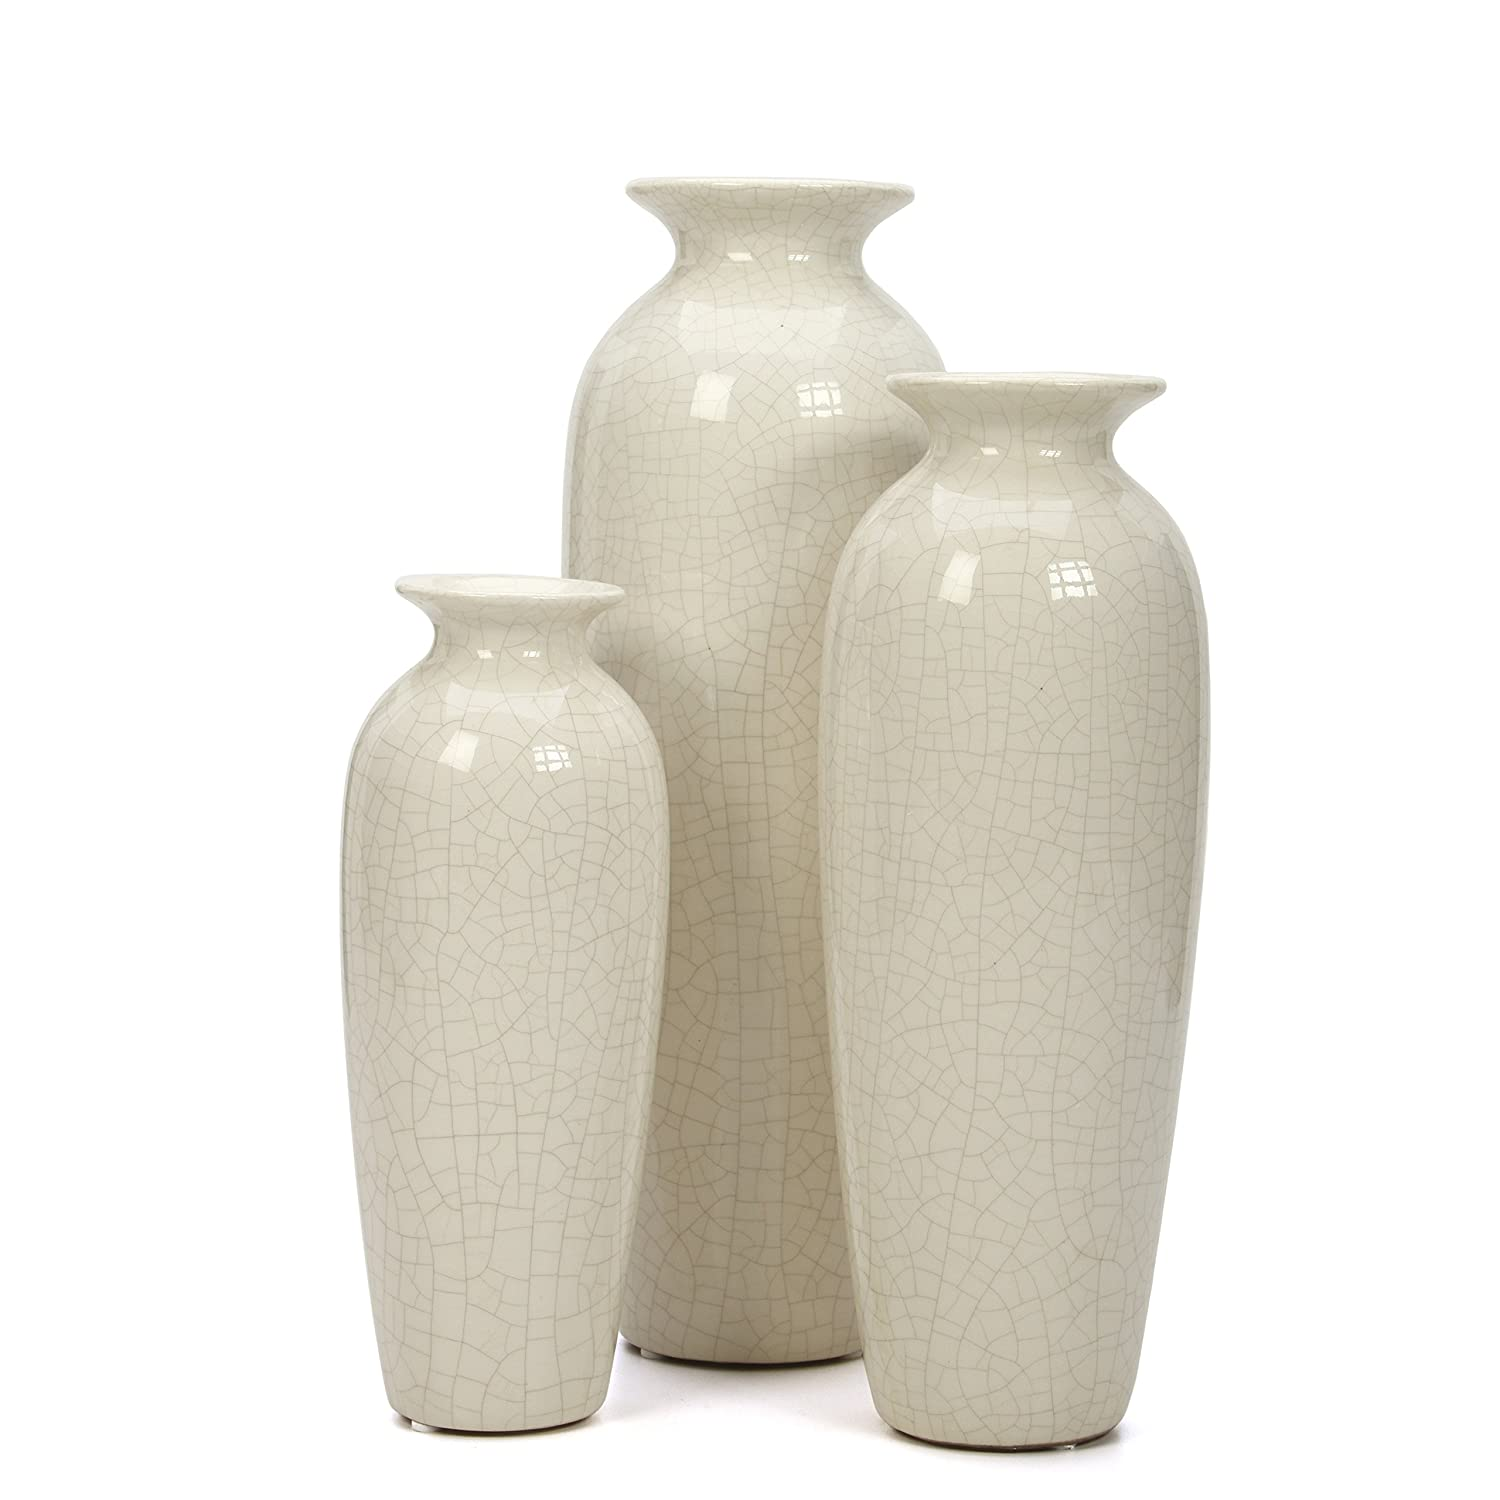 Amazon hosleys set of 3 crackle ivory ceramic vases in gift amazon hosleys set of 3 crackle ivory ceramic vases in gift box ideal gift for wedding or special occasions for use in home office decor reviewsmspy